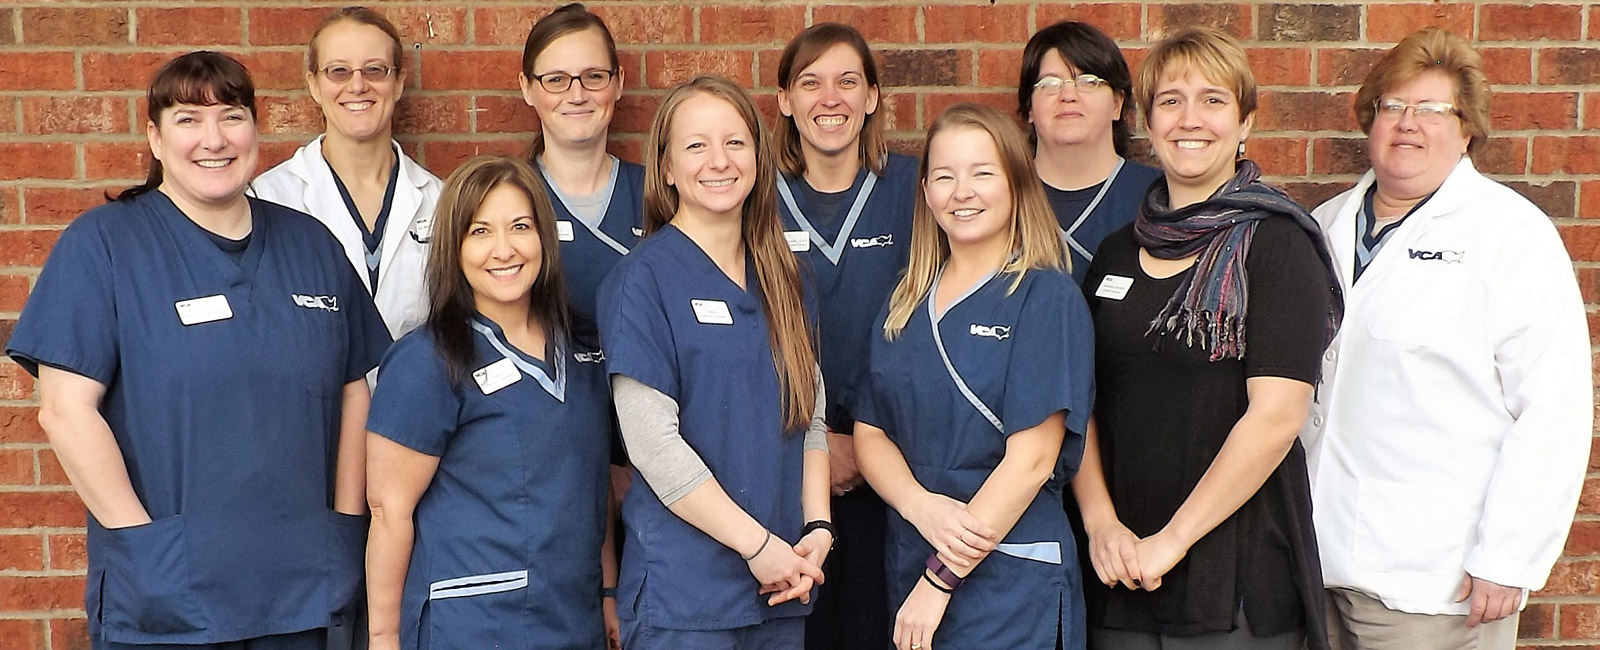 Team Picture of VCA Companion Care